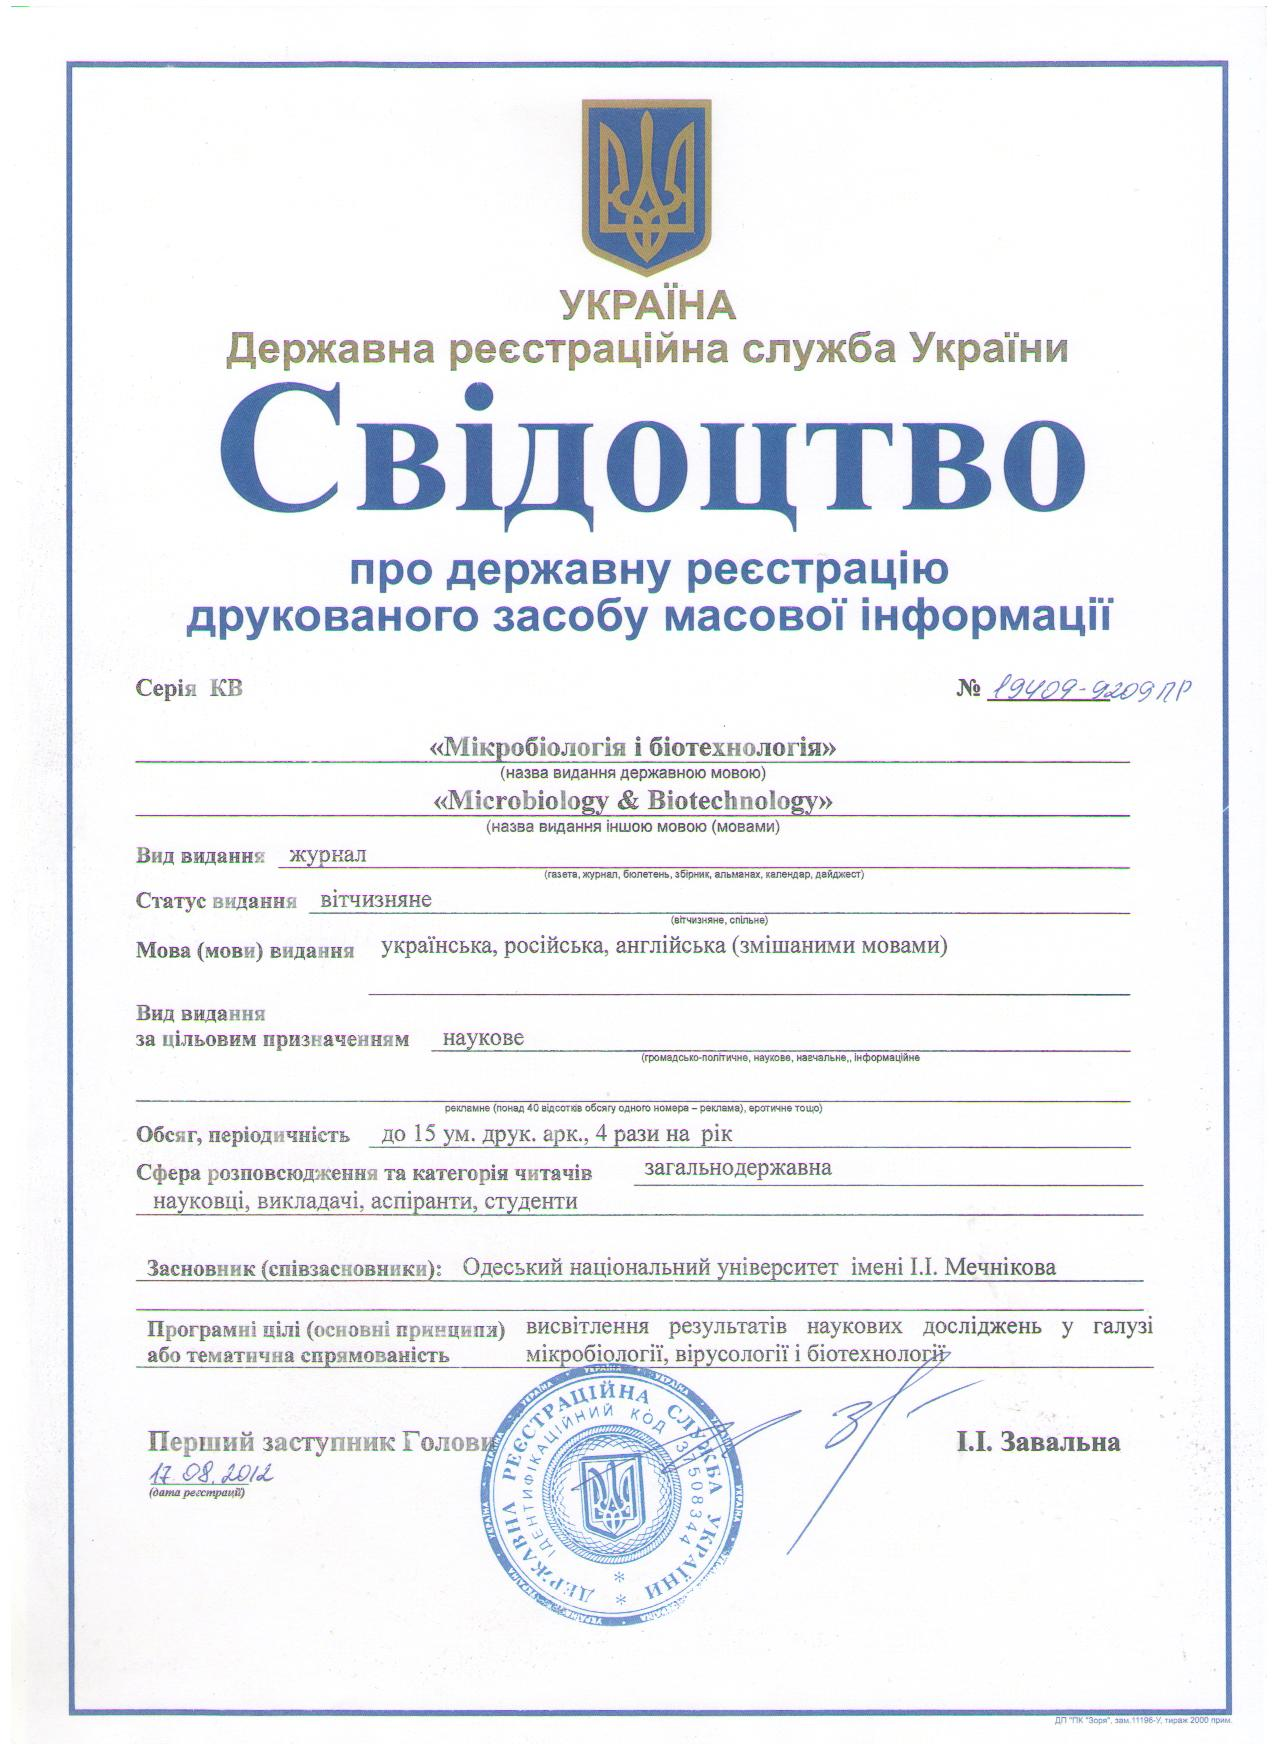 Microbiology Biotechnology Scientific Library Of Odessa National